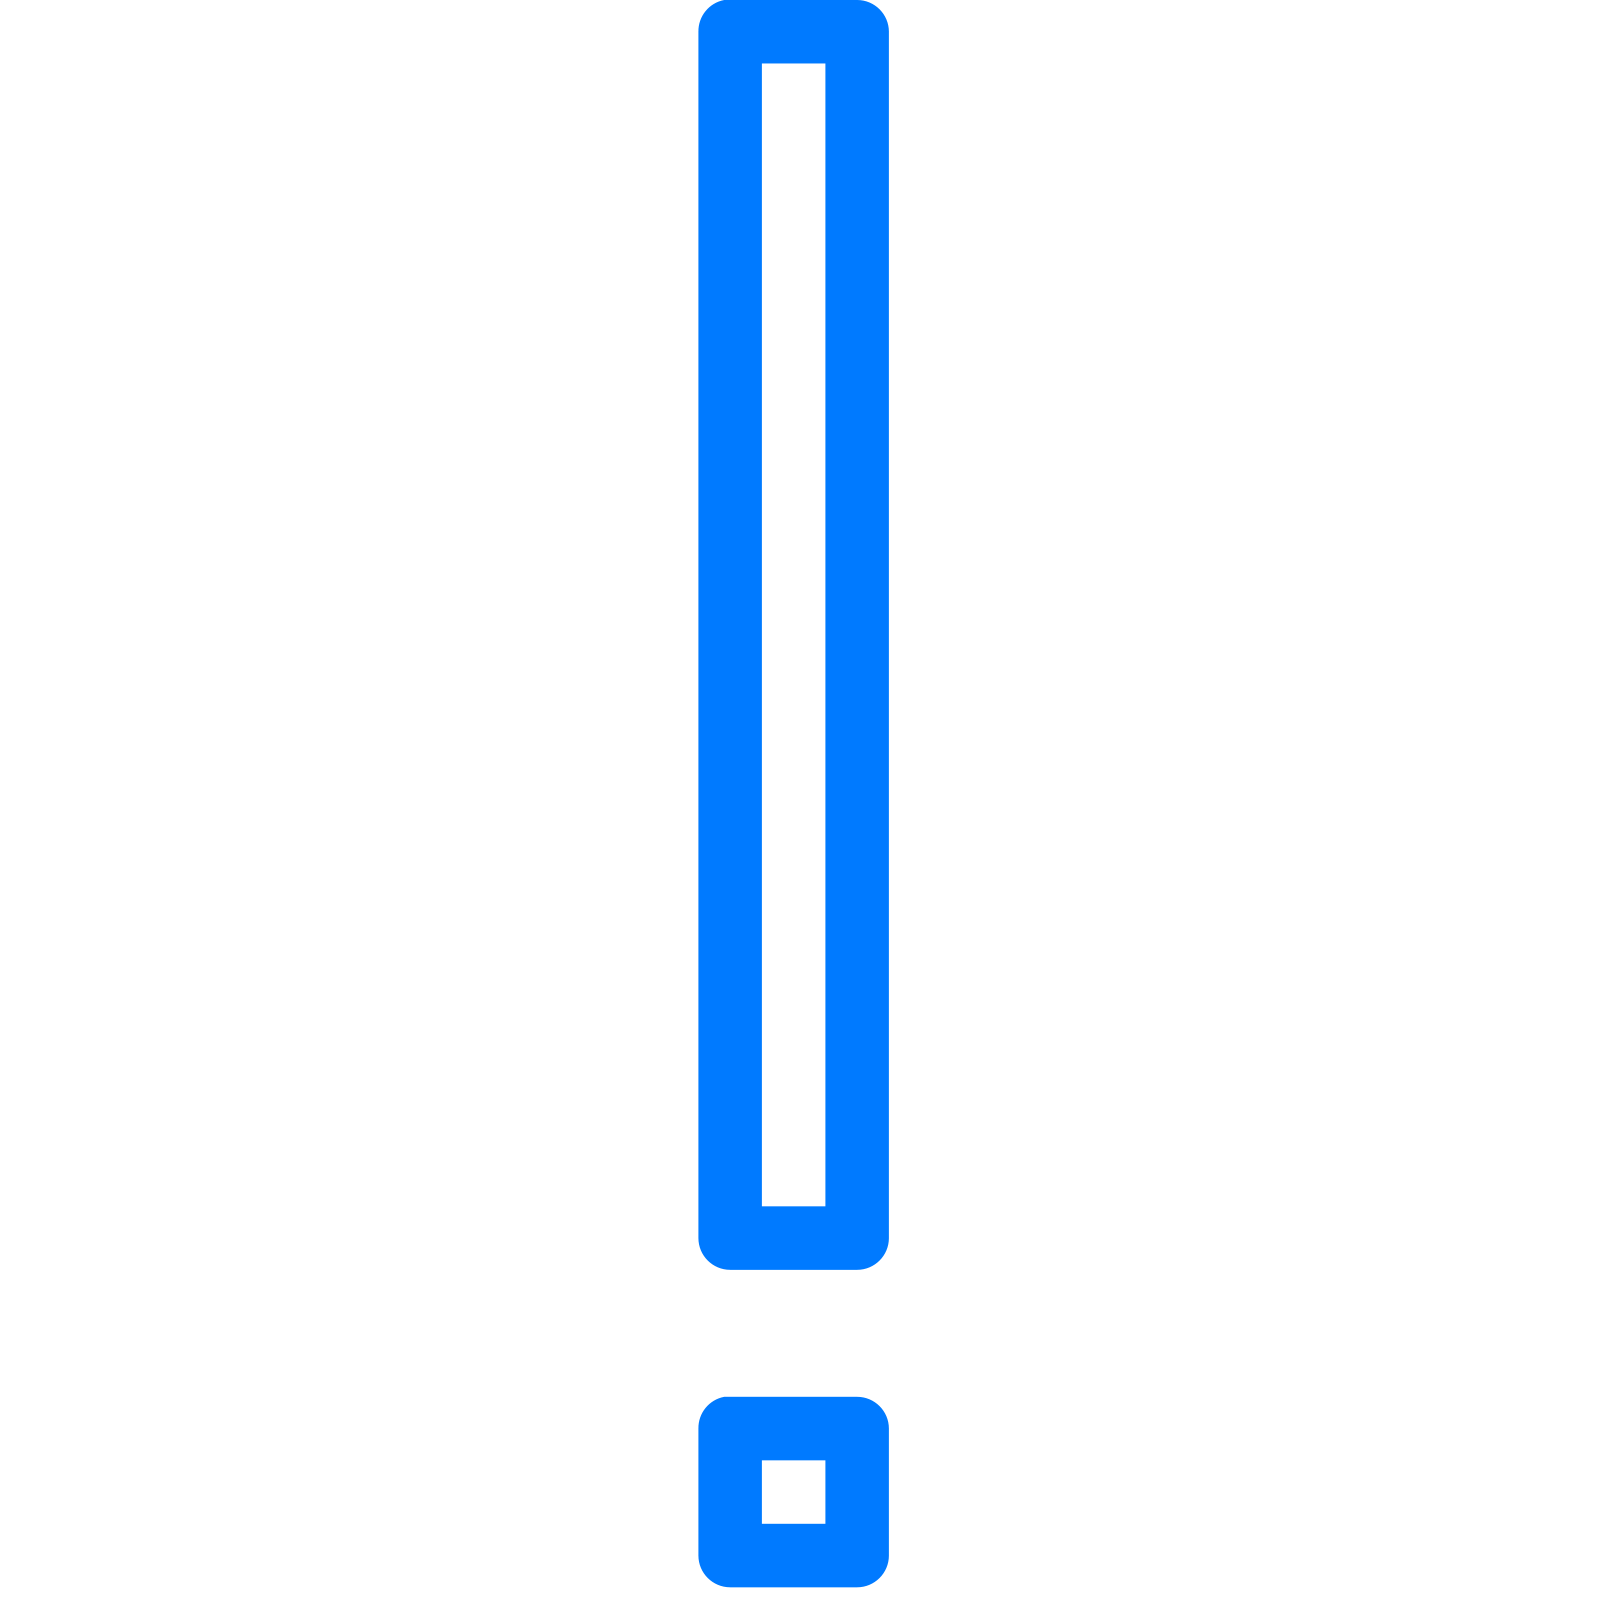 uploads exclamation mark exclamation mark PNG58 24